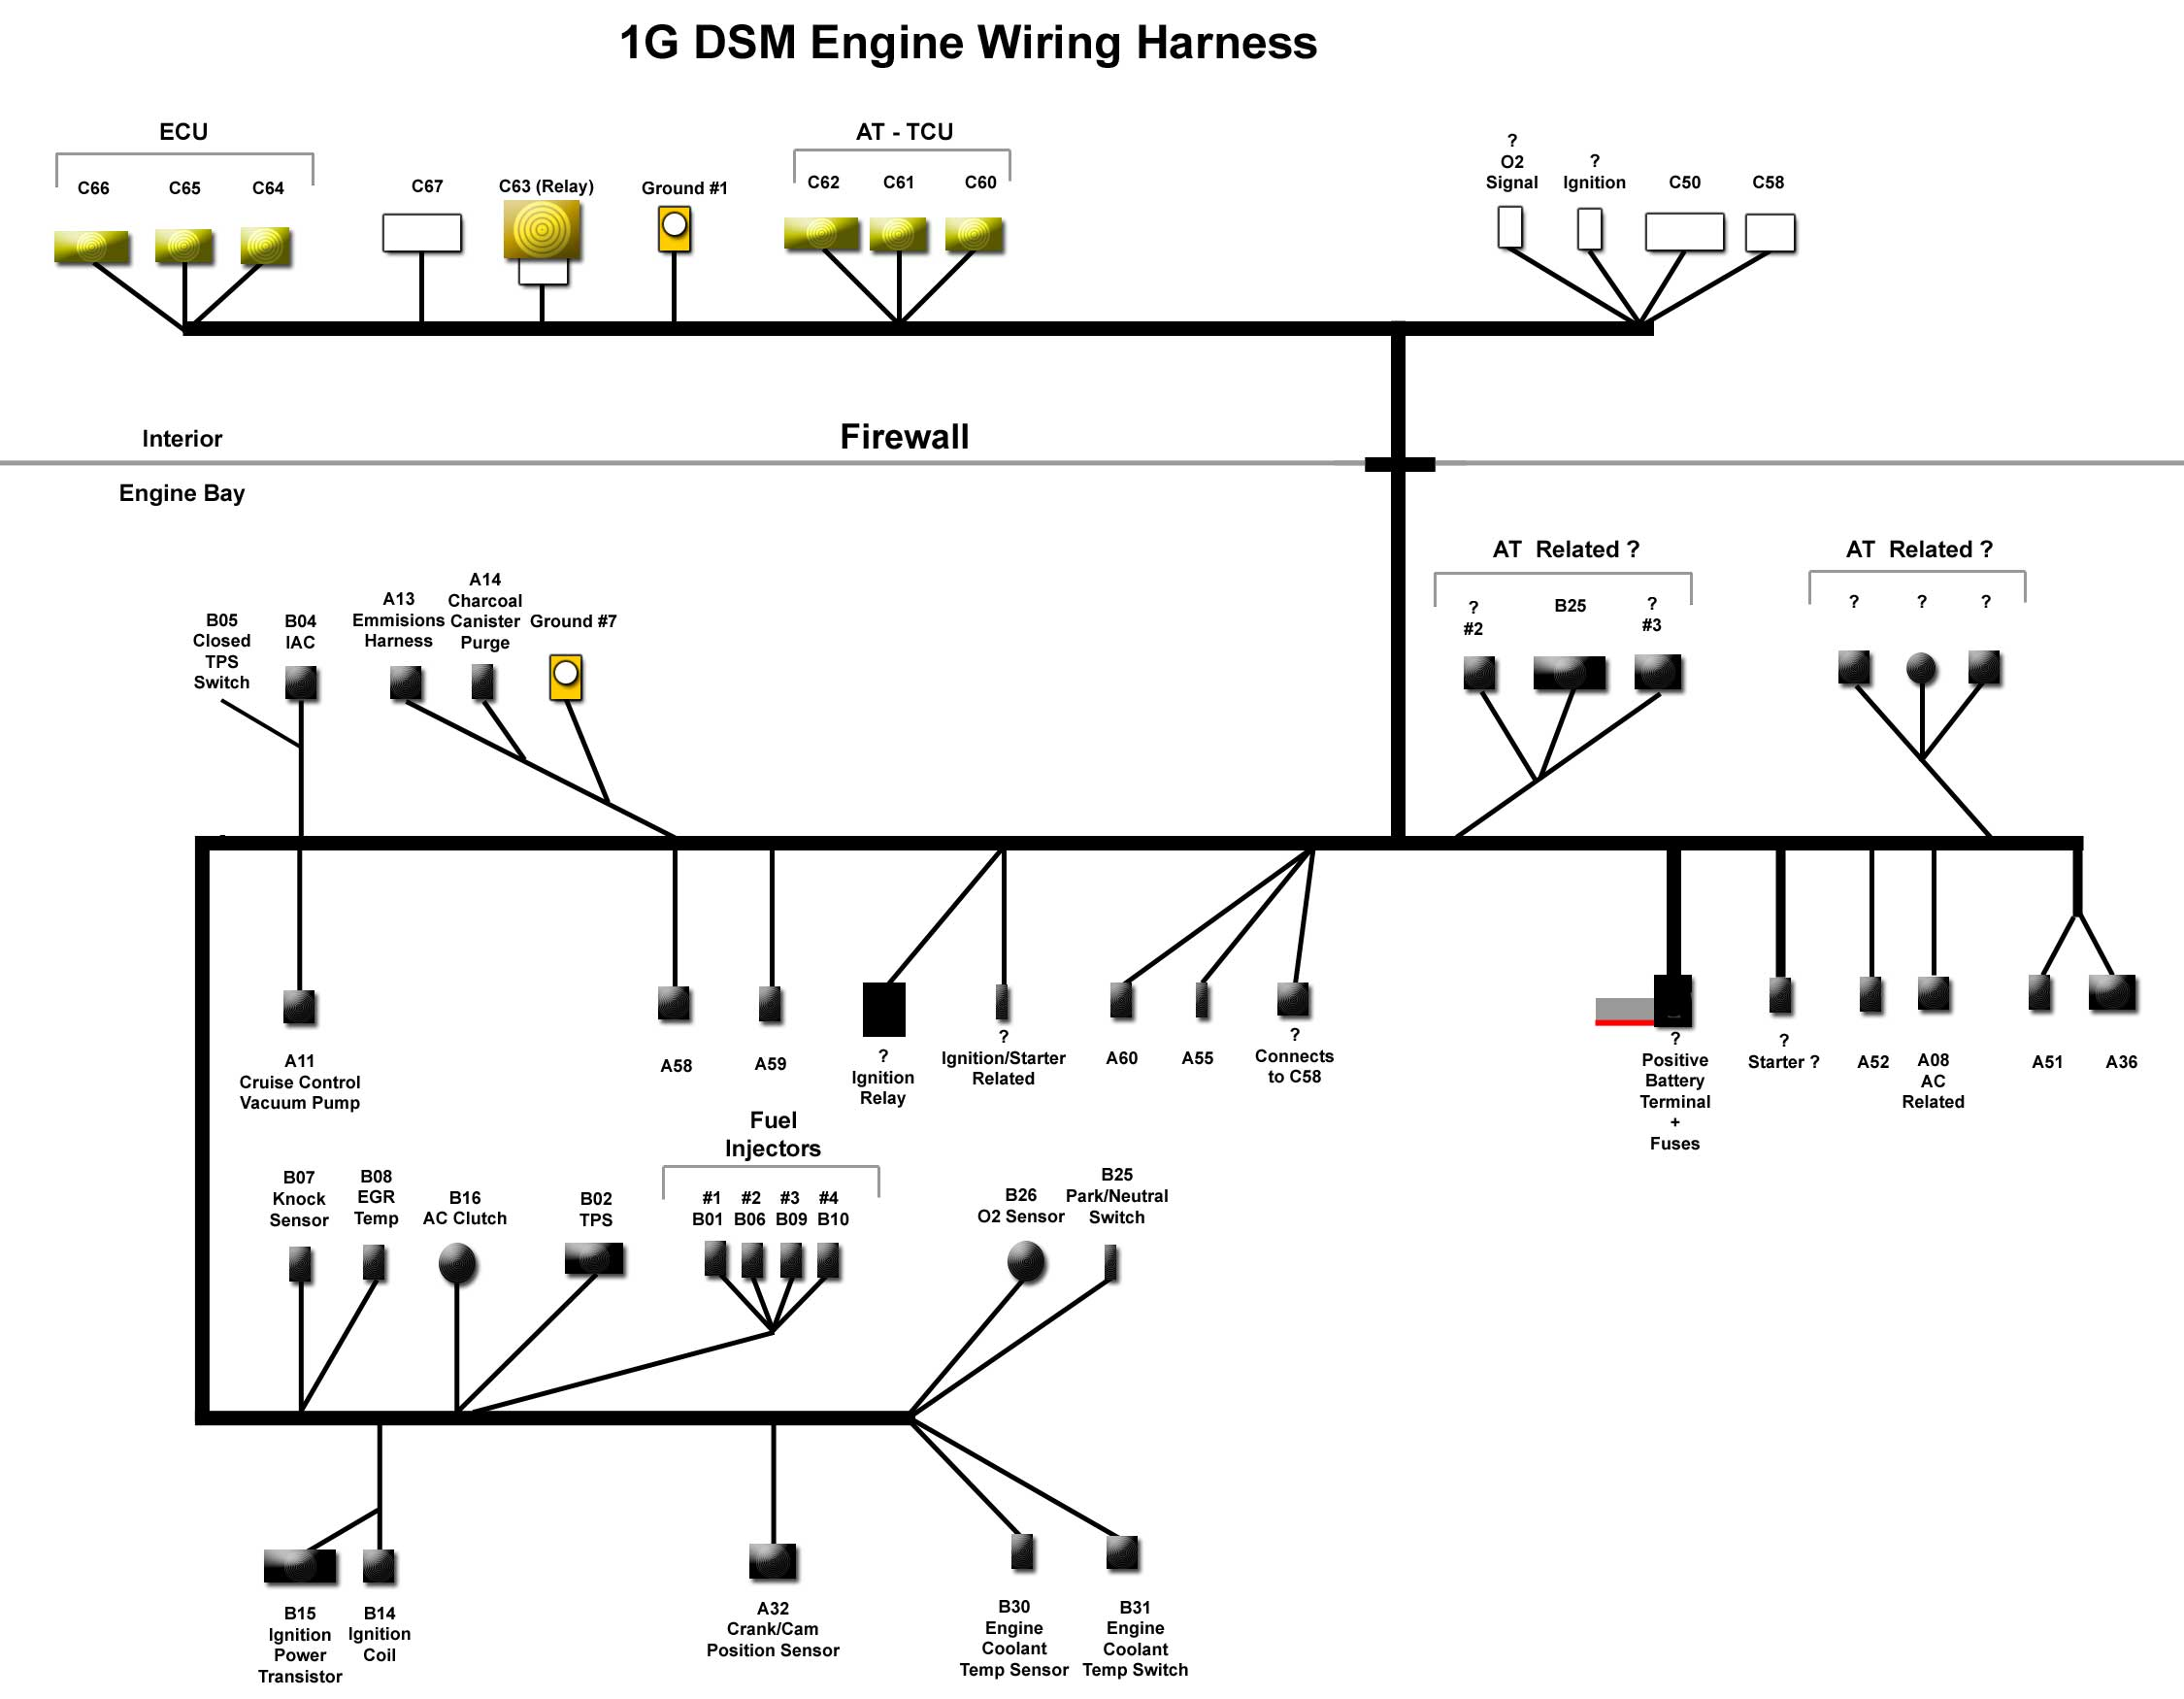 Wiring Harness Diagram Schemes 1997 F150 1gb Dsm 4g63 Turbo Rh Tech Mirage Performance Com